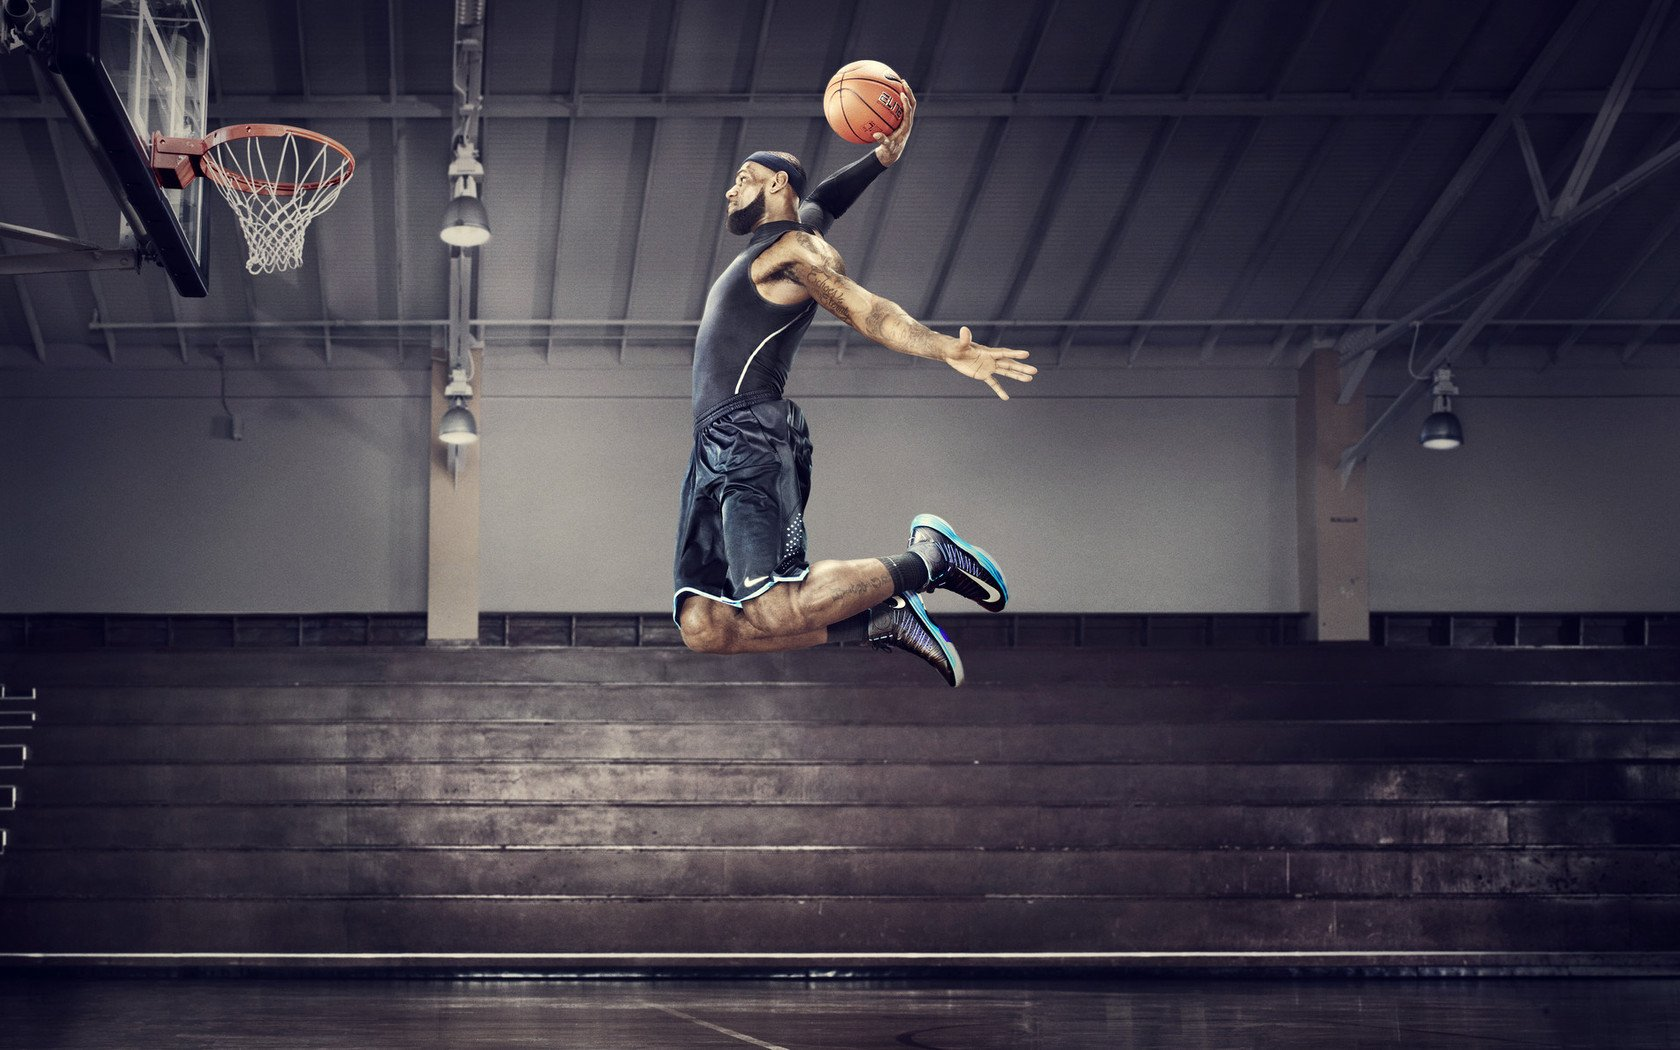 Wallpapers Of Basketball Players